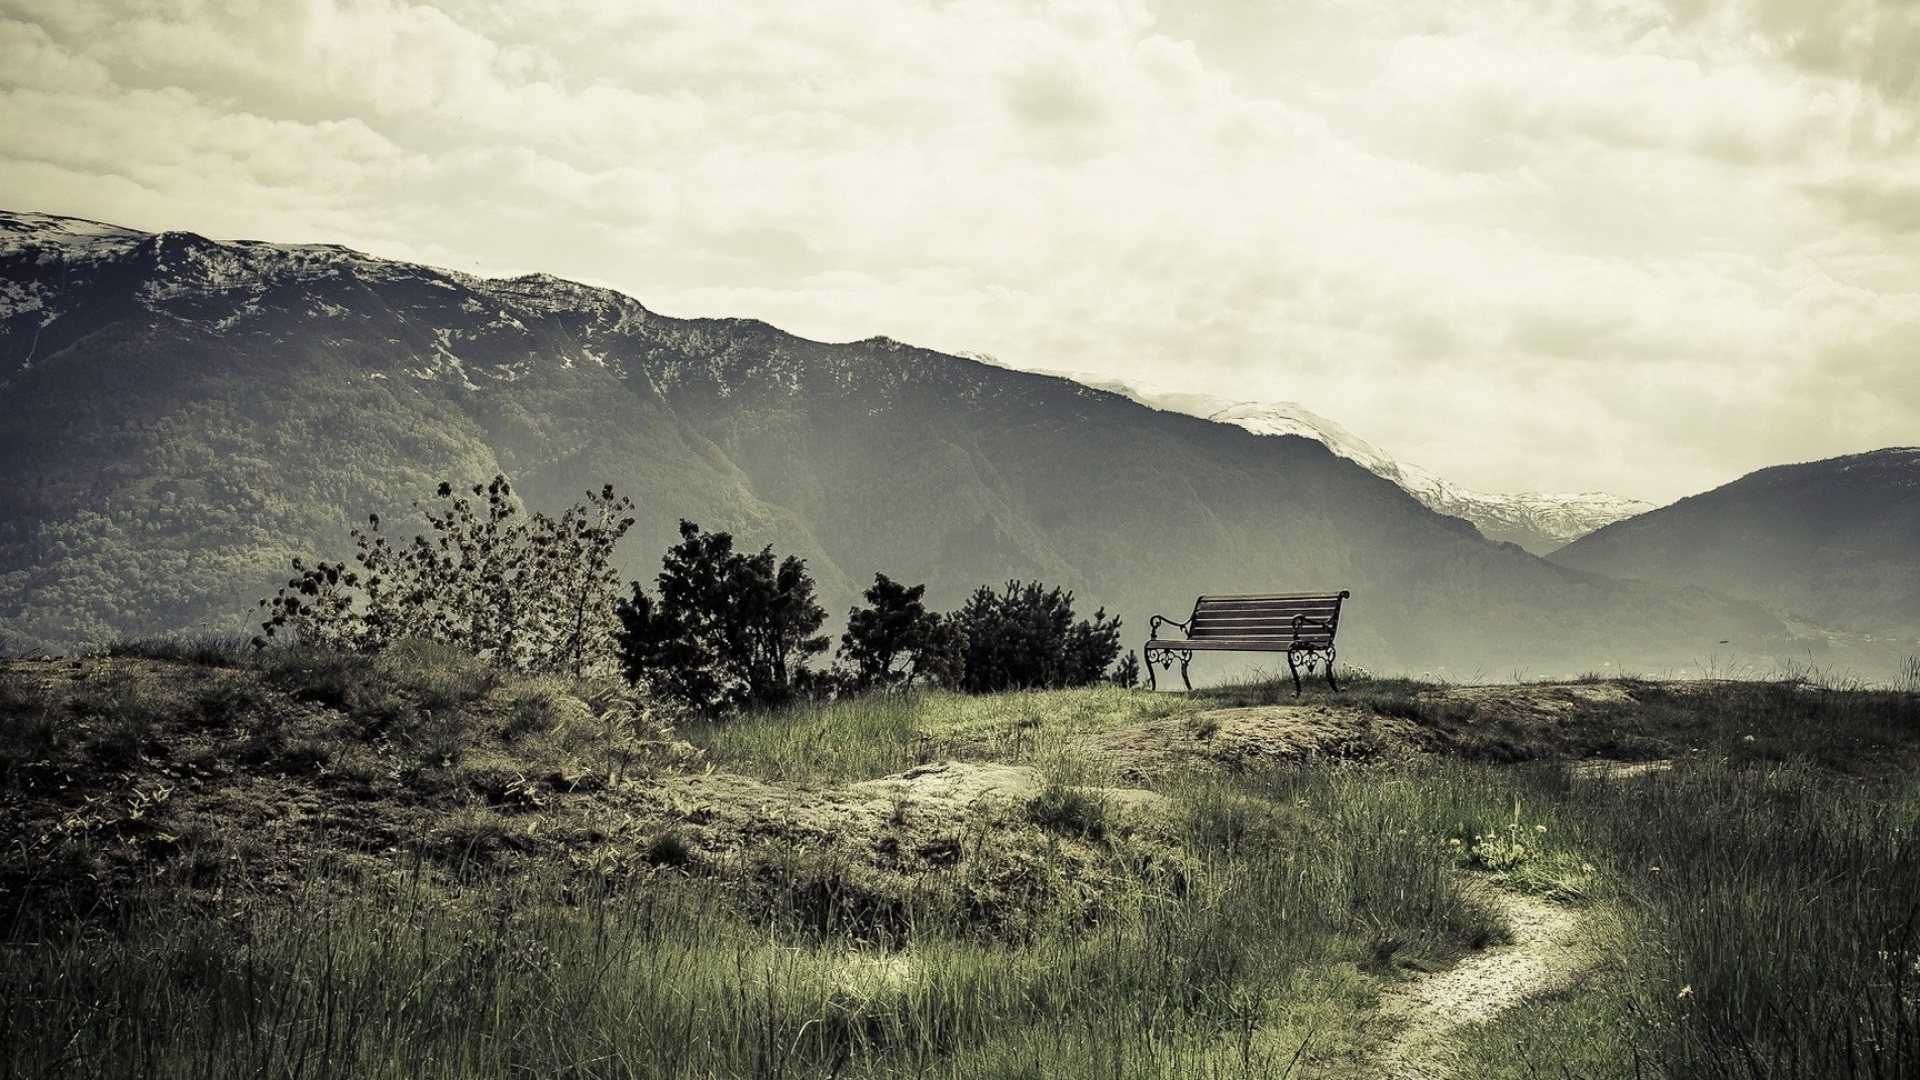 Awesome Hd Wallpapers For Mac 1920x1080 Chill Out Bench Mountains Desktop Pc And Mac